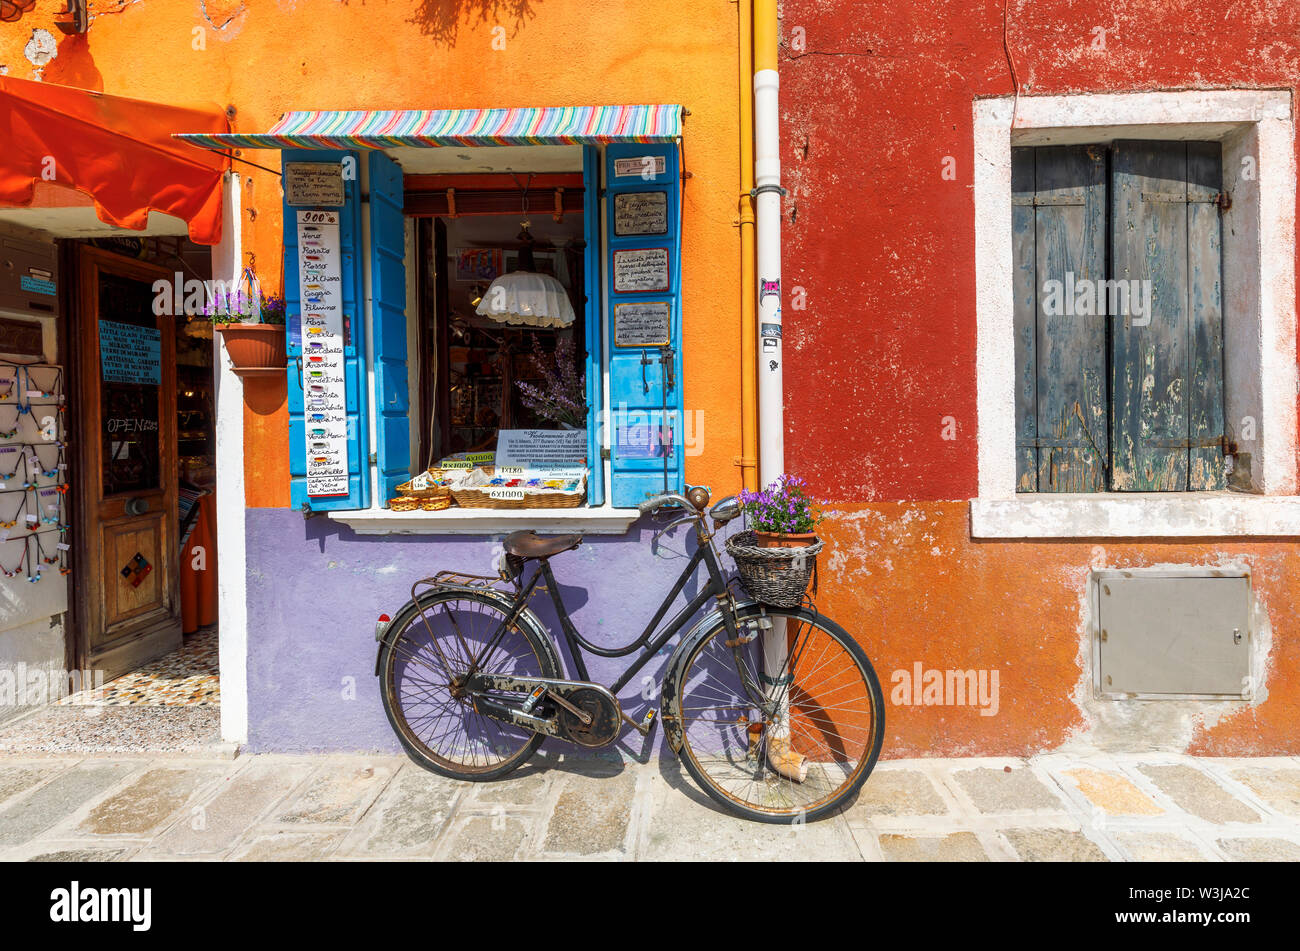 Rusty vintage woman's bicycle parked outside a bright orange and mauve painted souvenir shop in Burano, a small island in Venice Lagoon, Venice, Italy - Stock Image